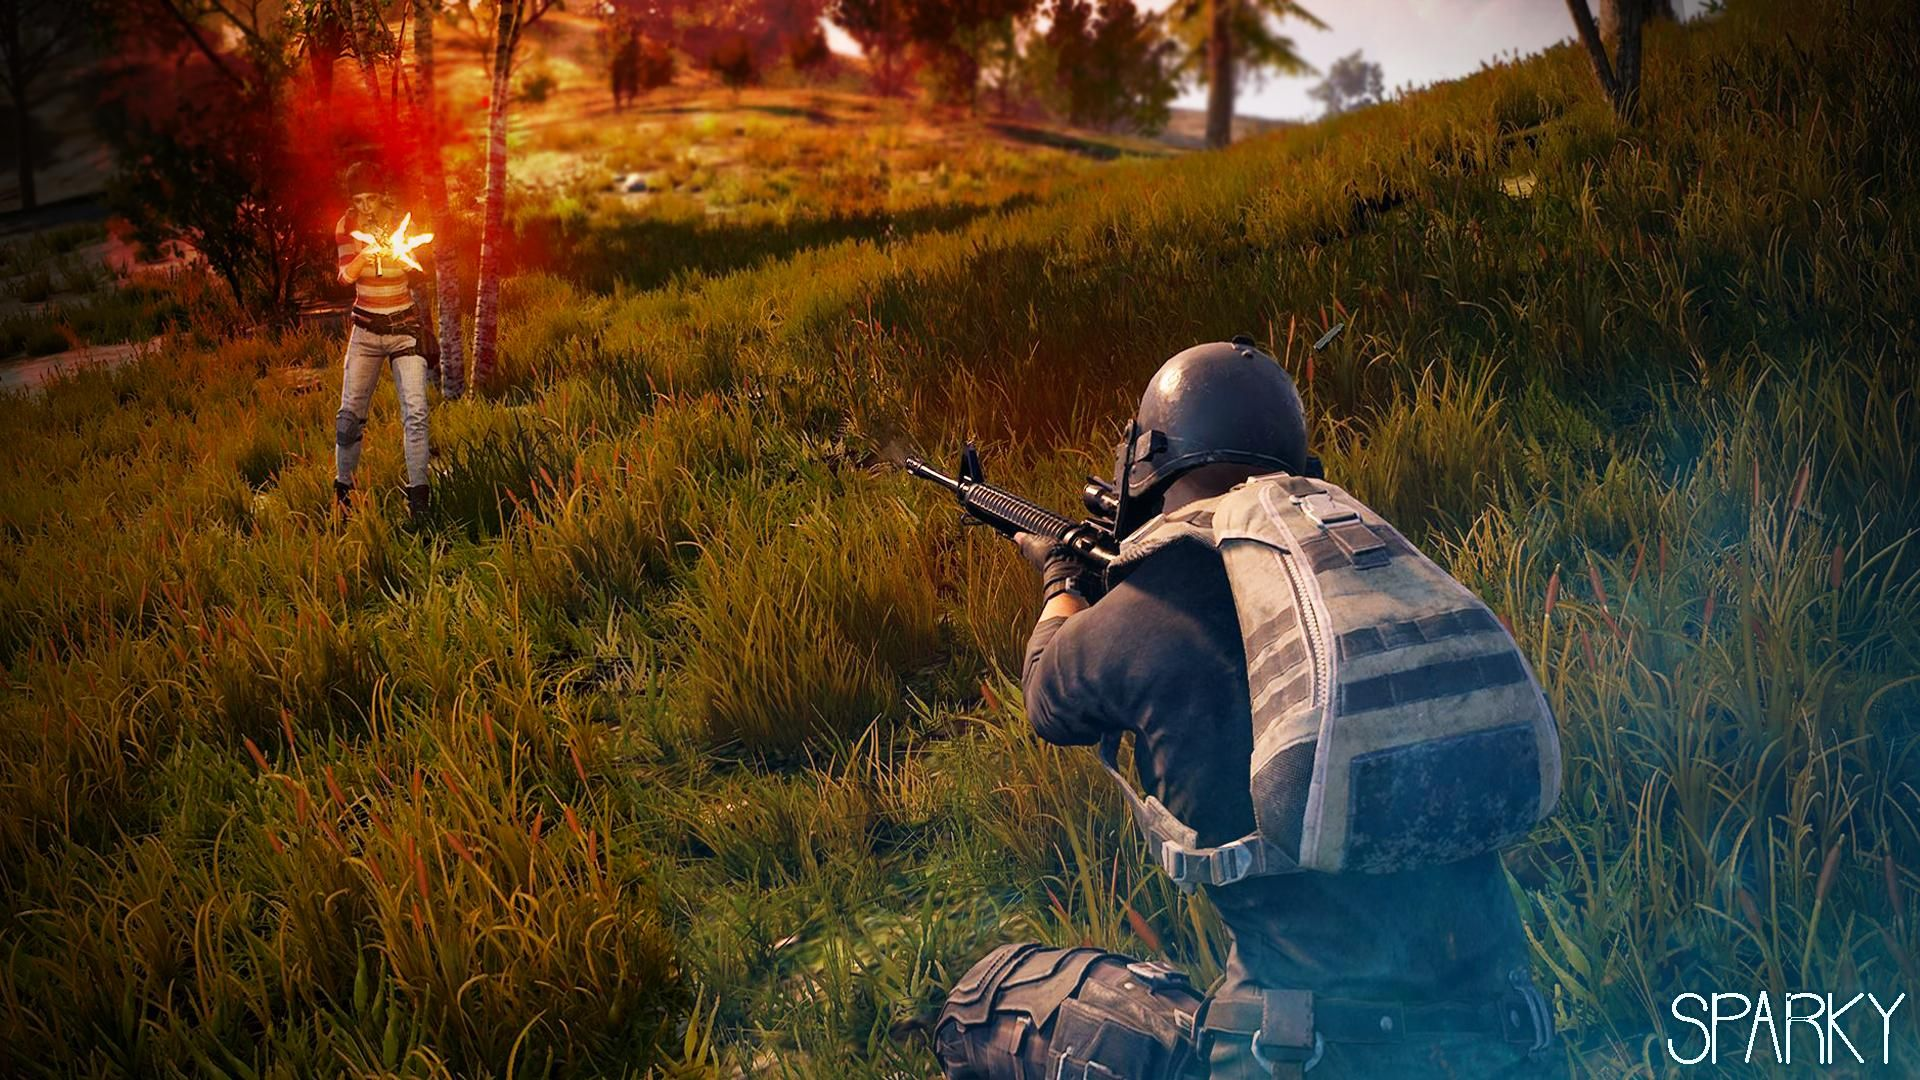 Wallpaper Of Pubg Mobile: Pin On IPhone 6S Plus Wallpapers Must To Have